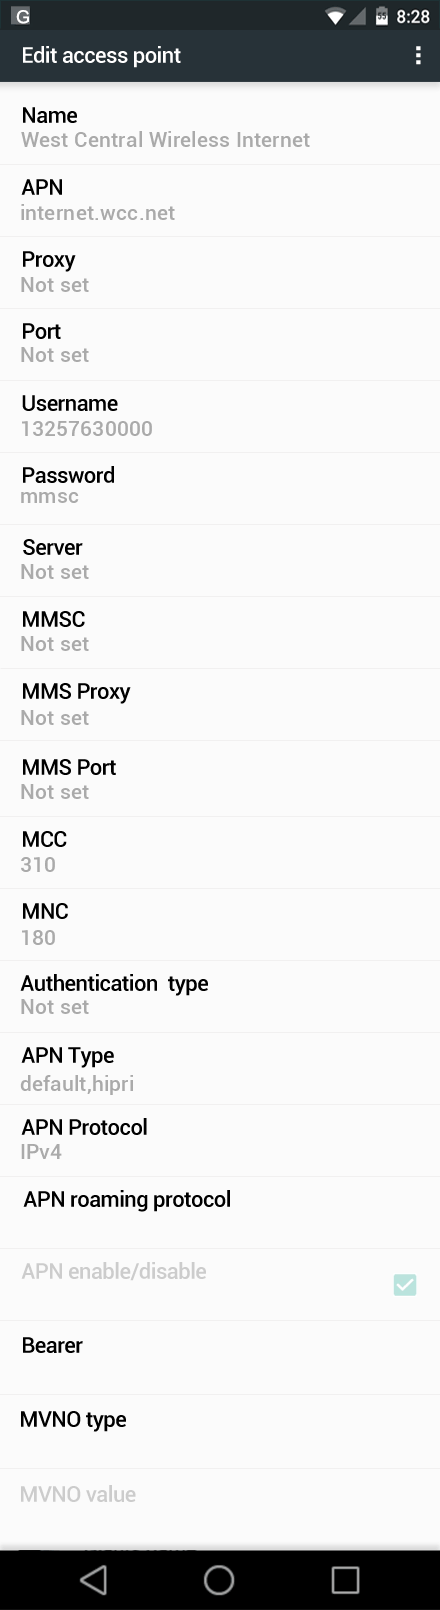 West Central Wireless Internet APN settings for Android Marshmallow screenshot